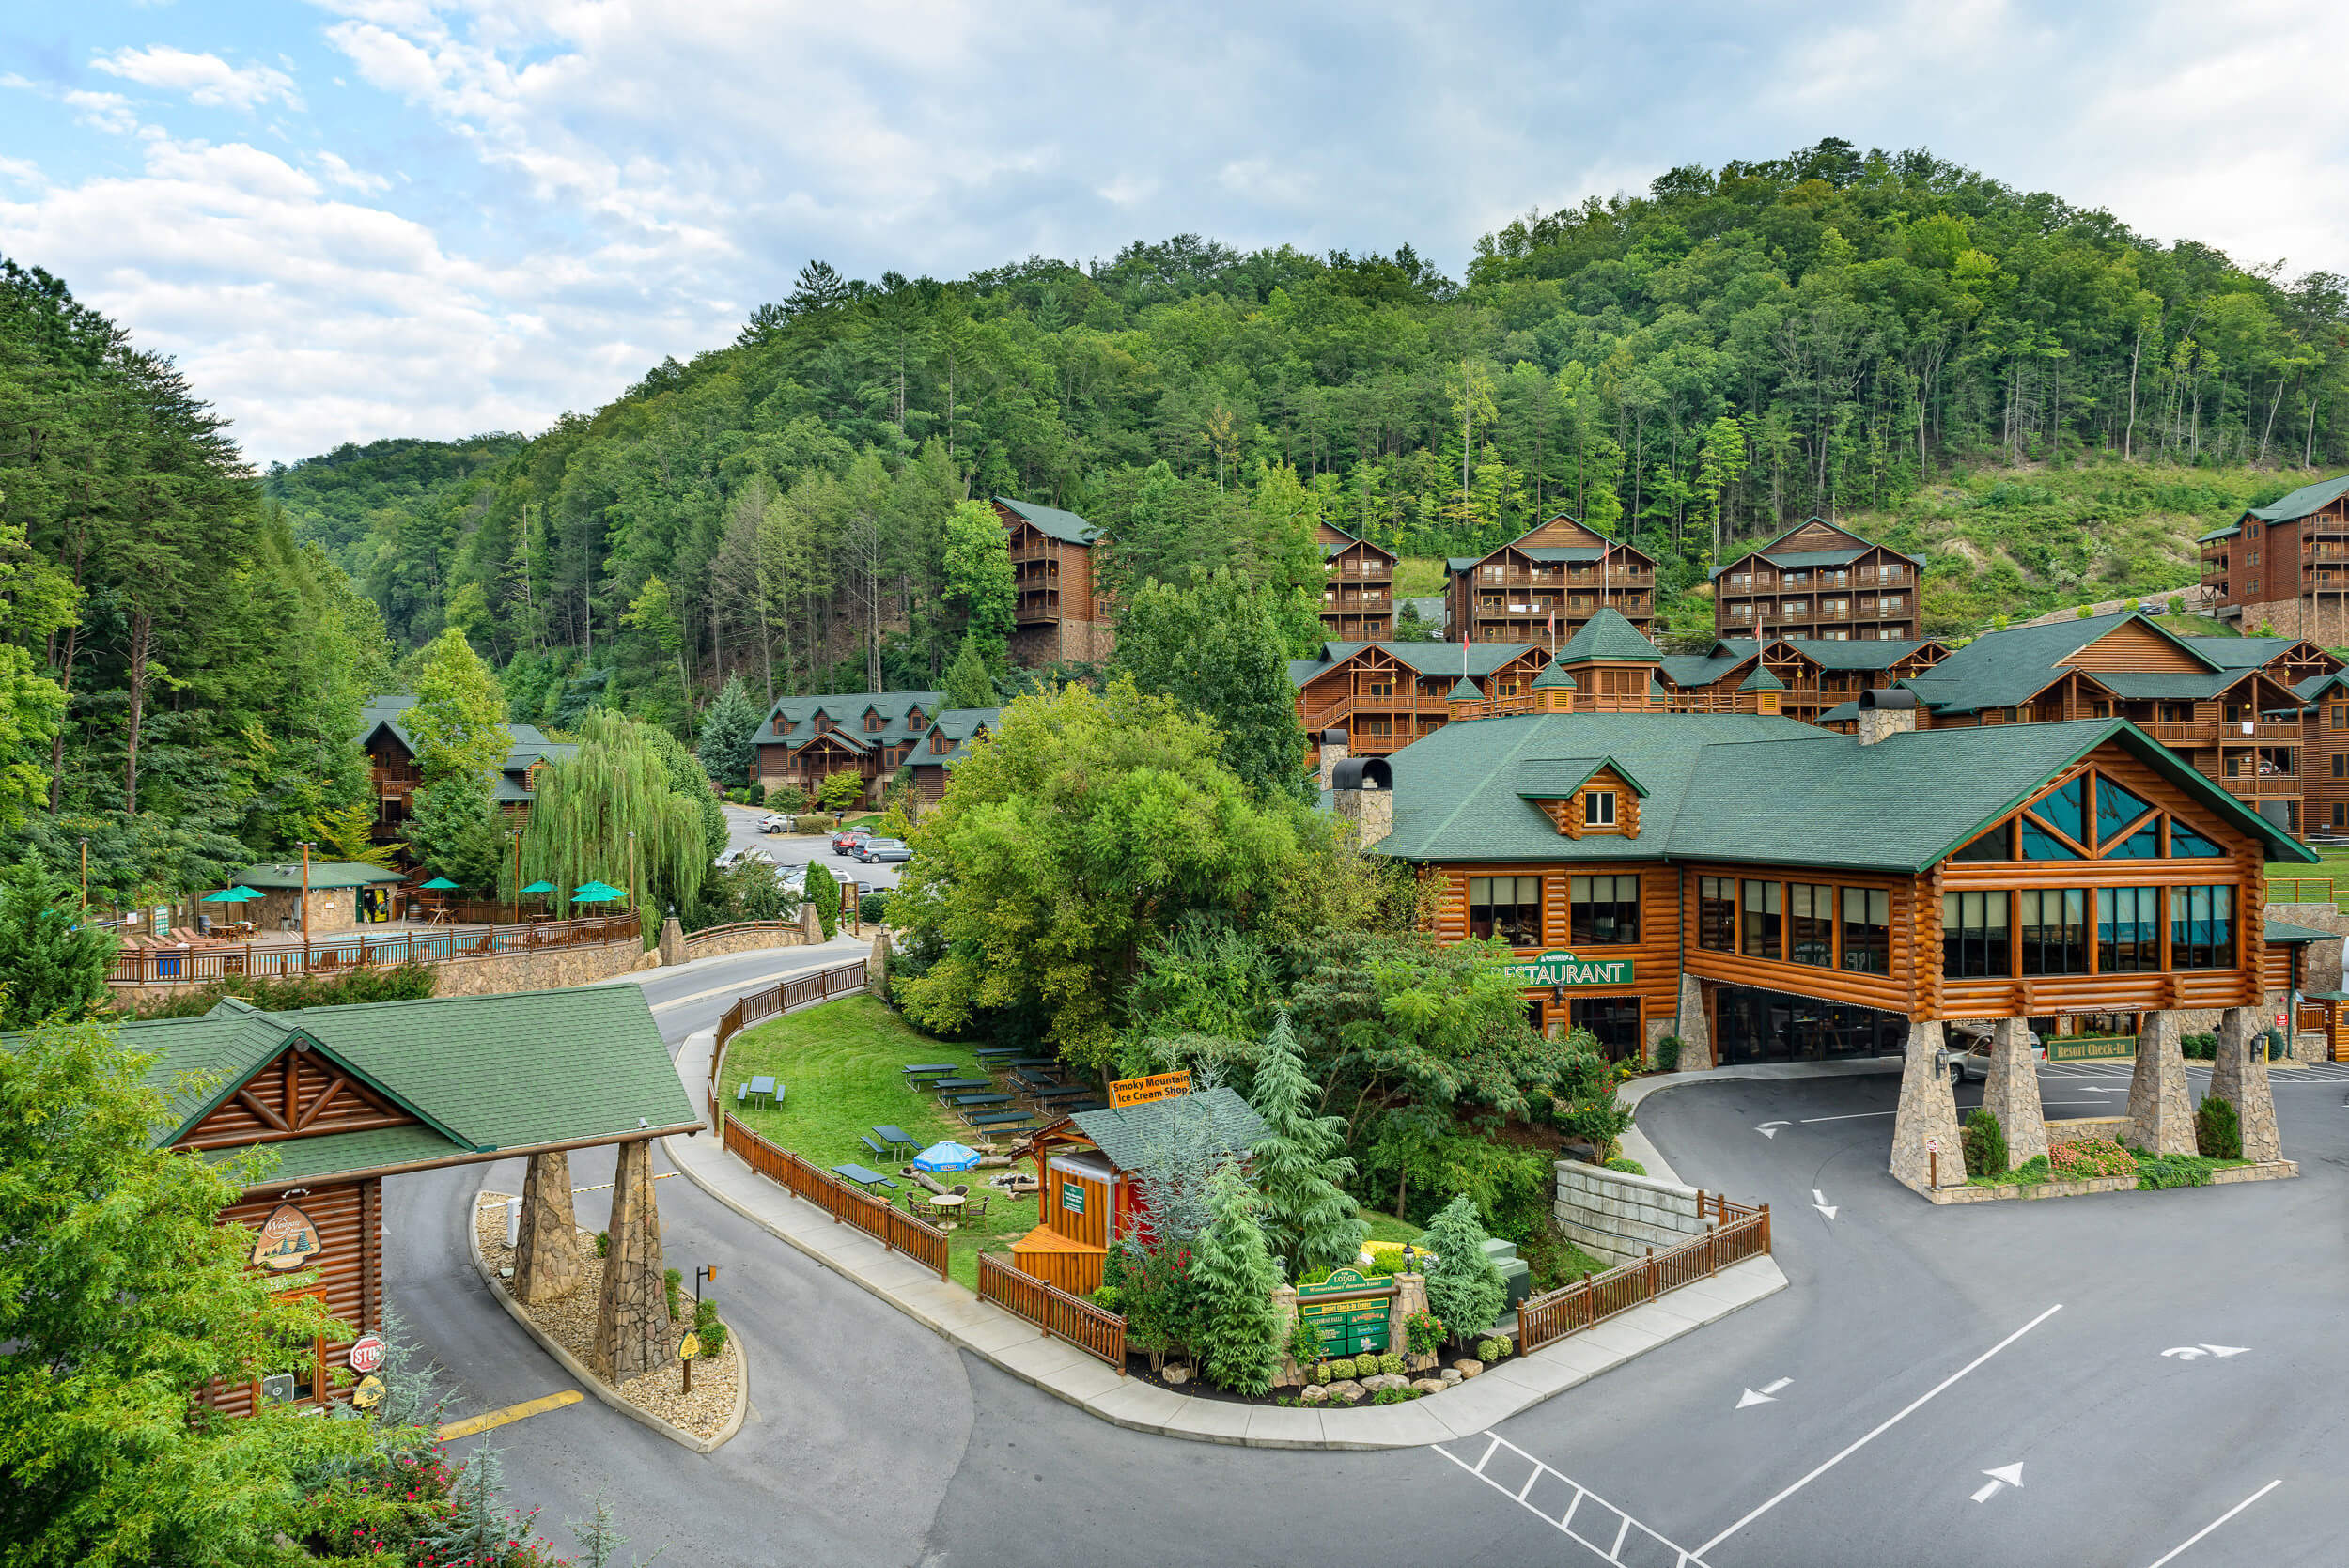 Westgate Smoky Mountain Resort Amp Spa Tennessee Area Hotels